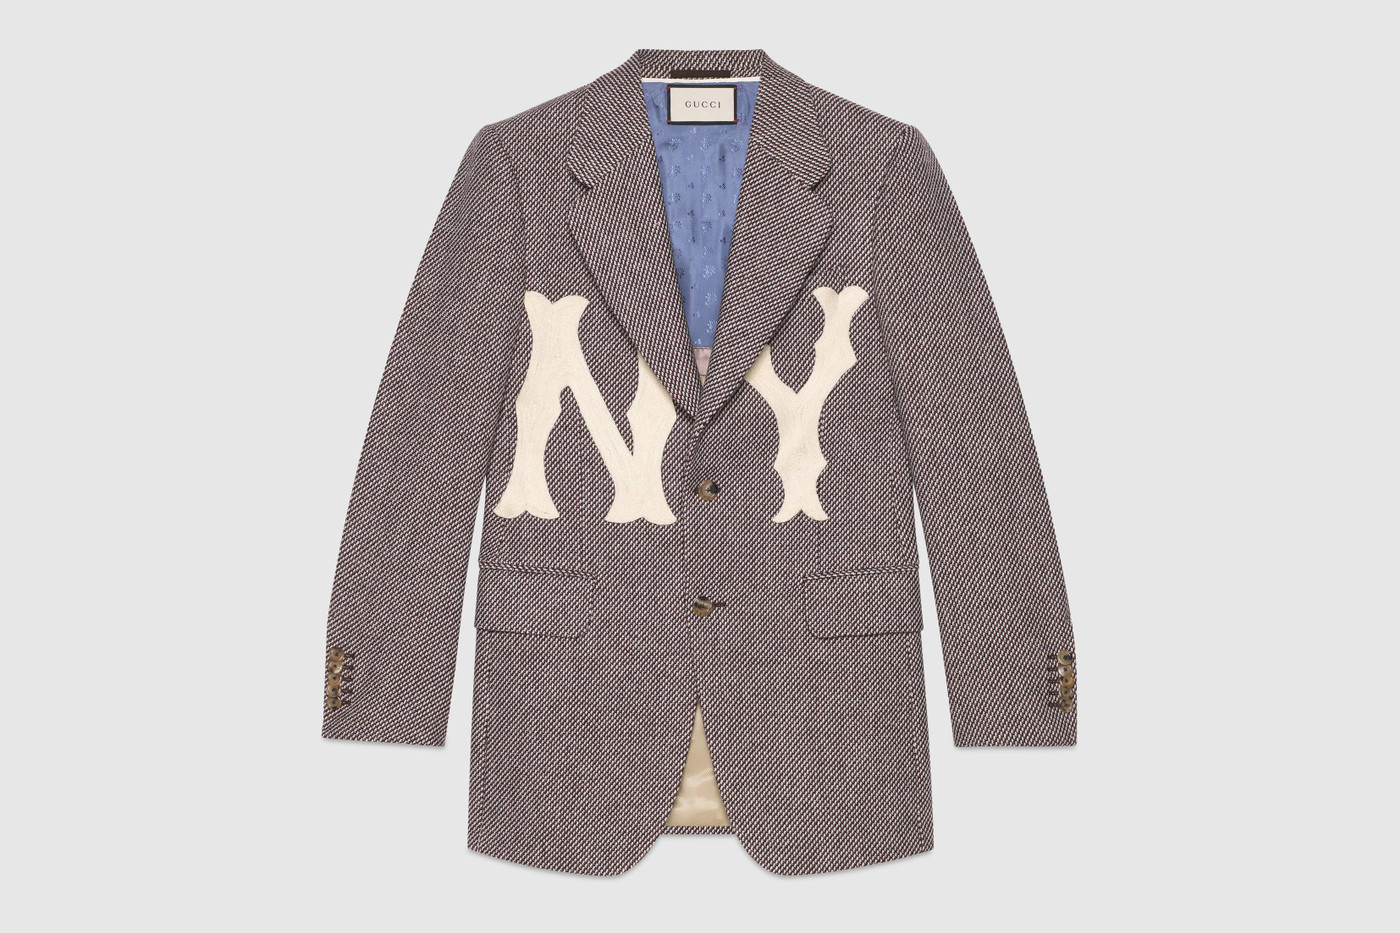 yankees-gucci-apparel-5 – Copy